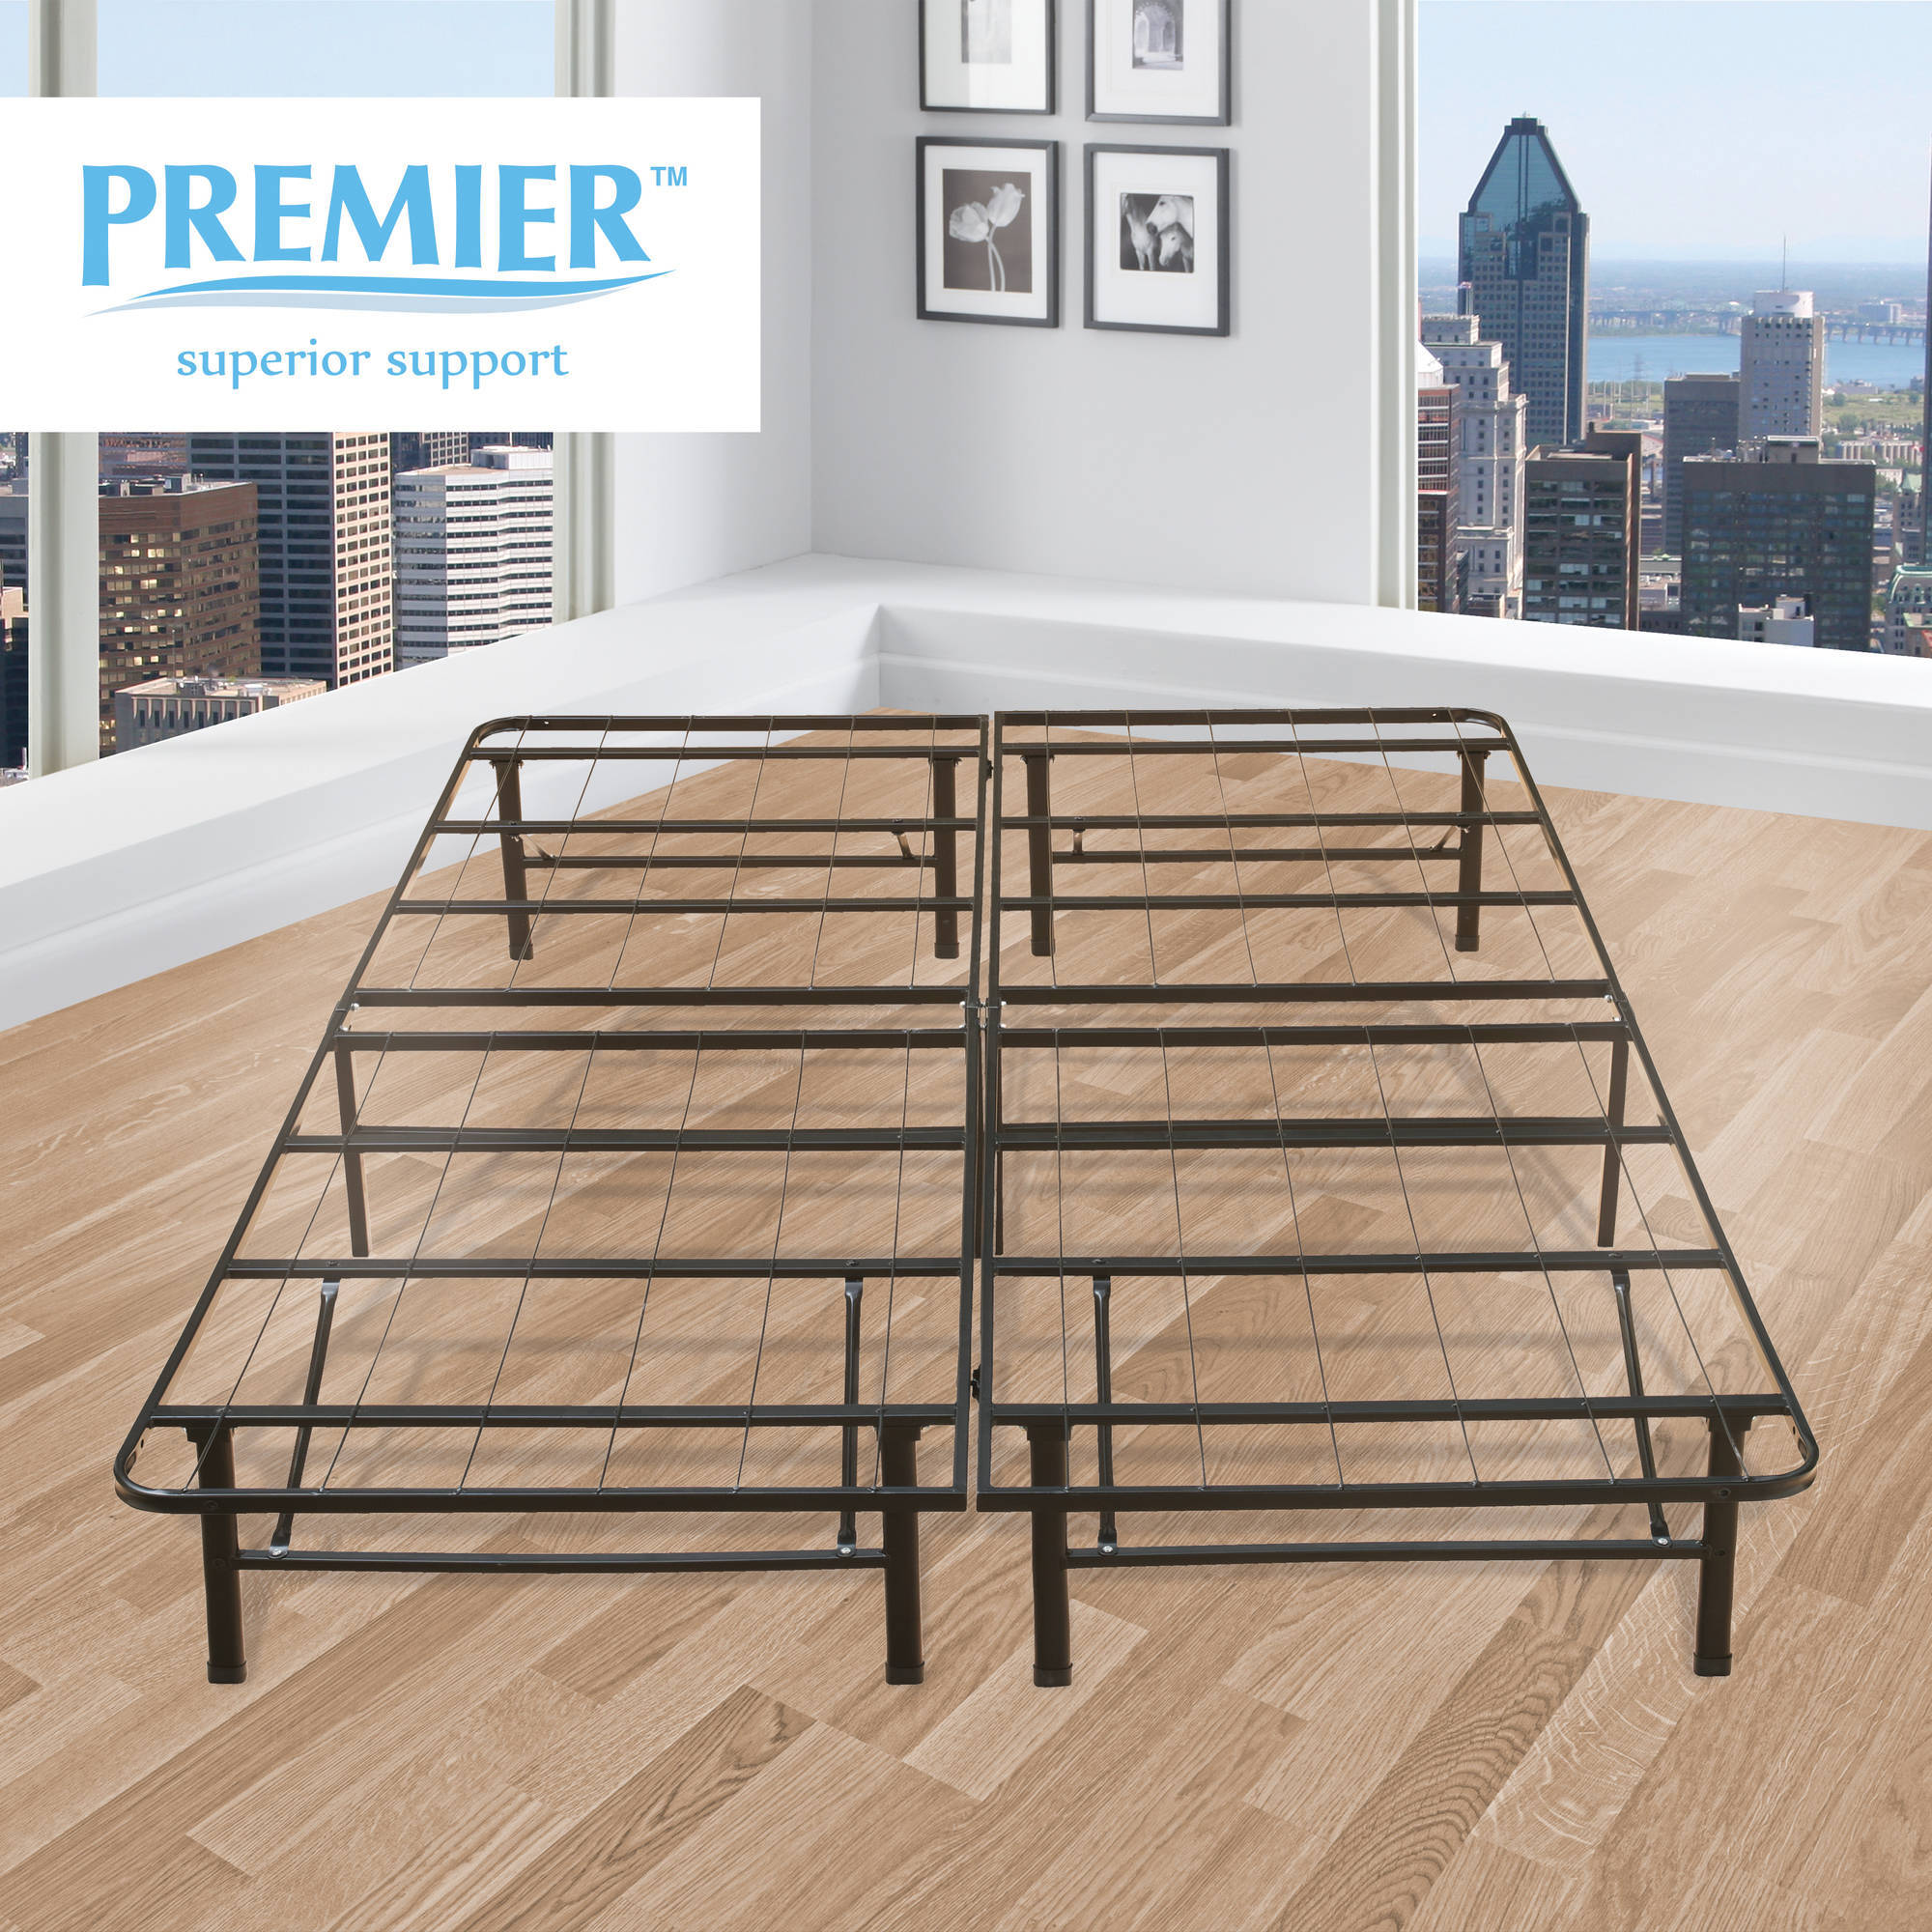 "Premier Platform 14"" Metal Base Foundation Bed Frame, Multiple Sizes"